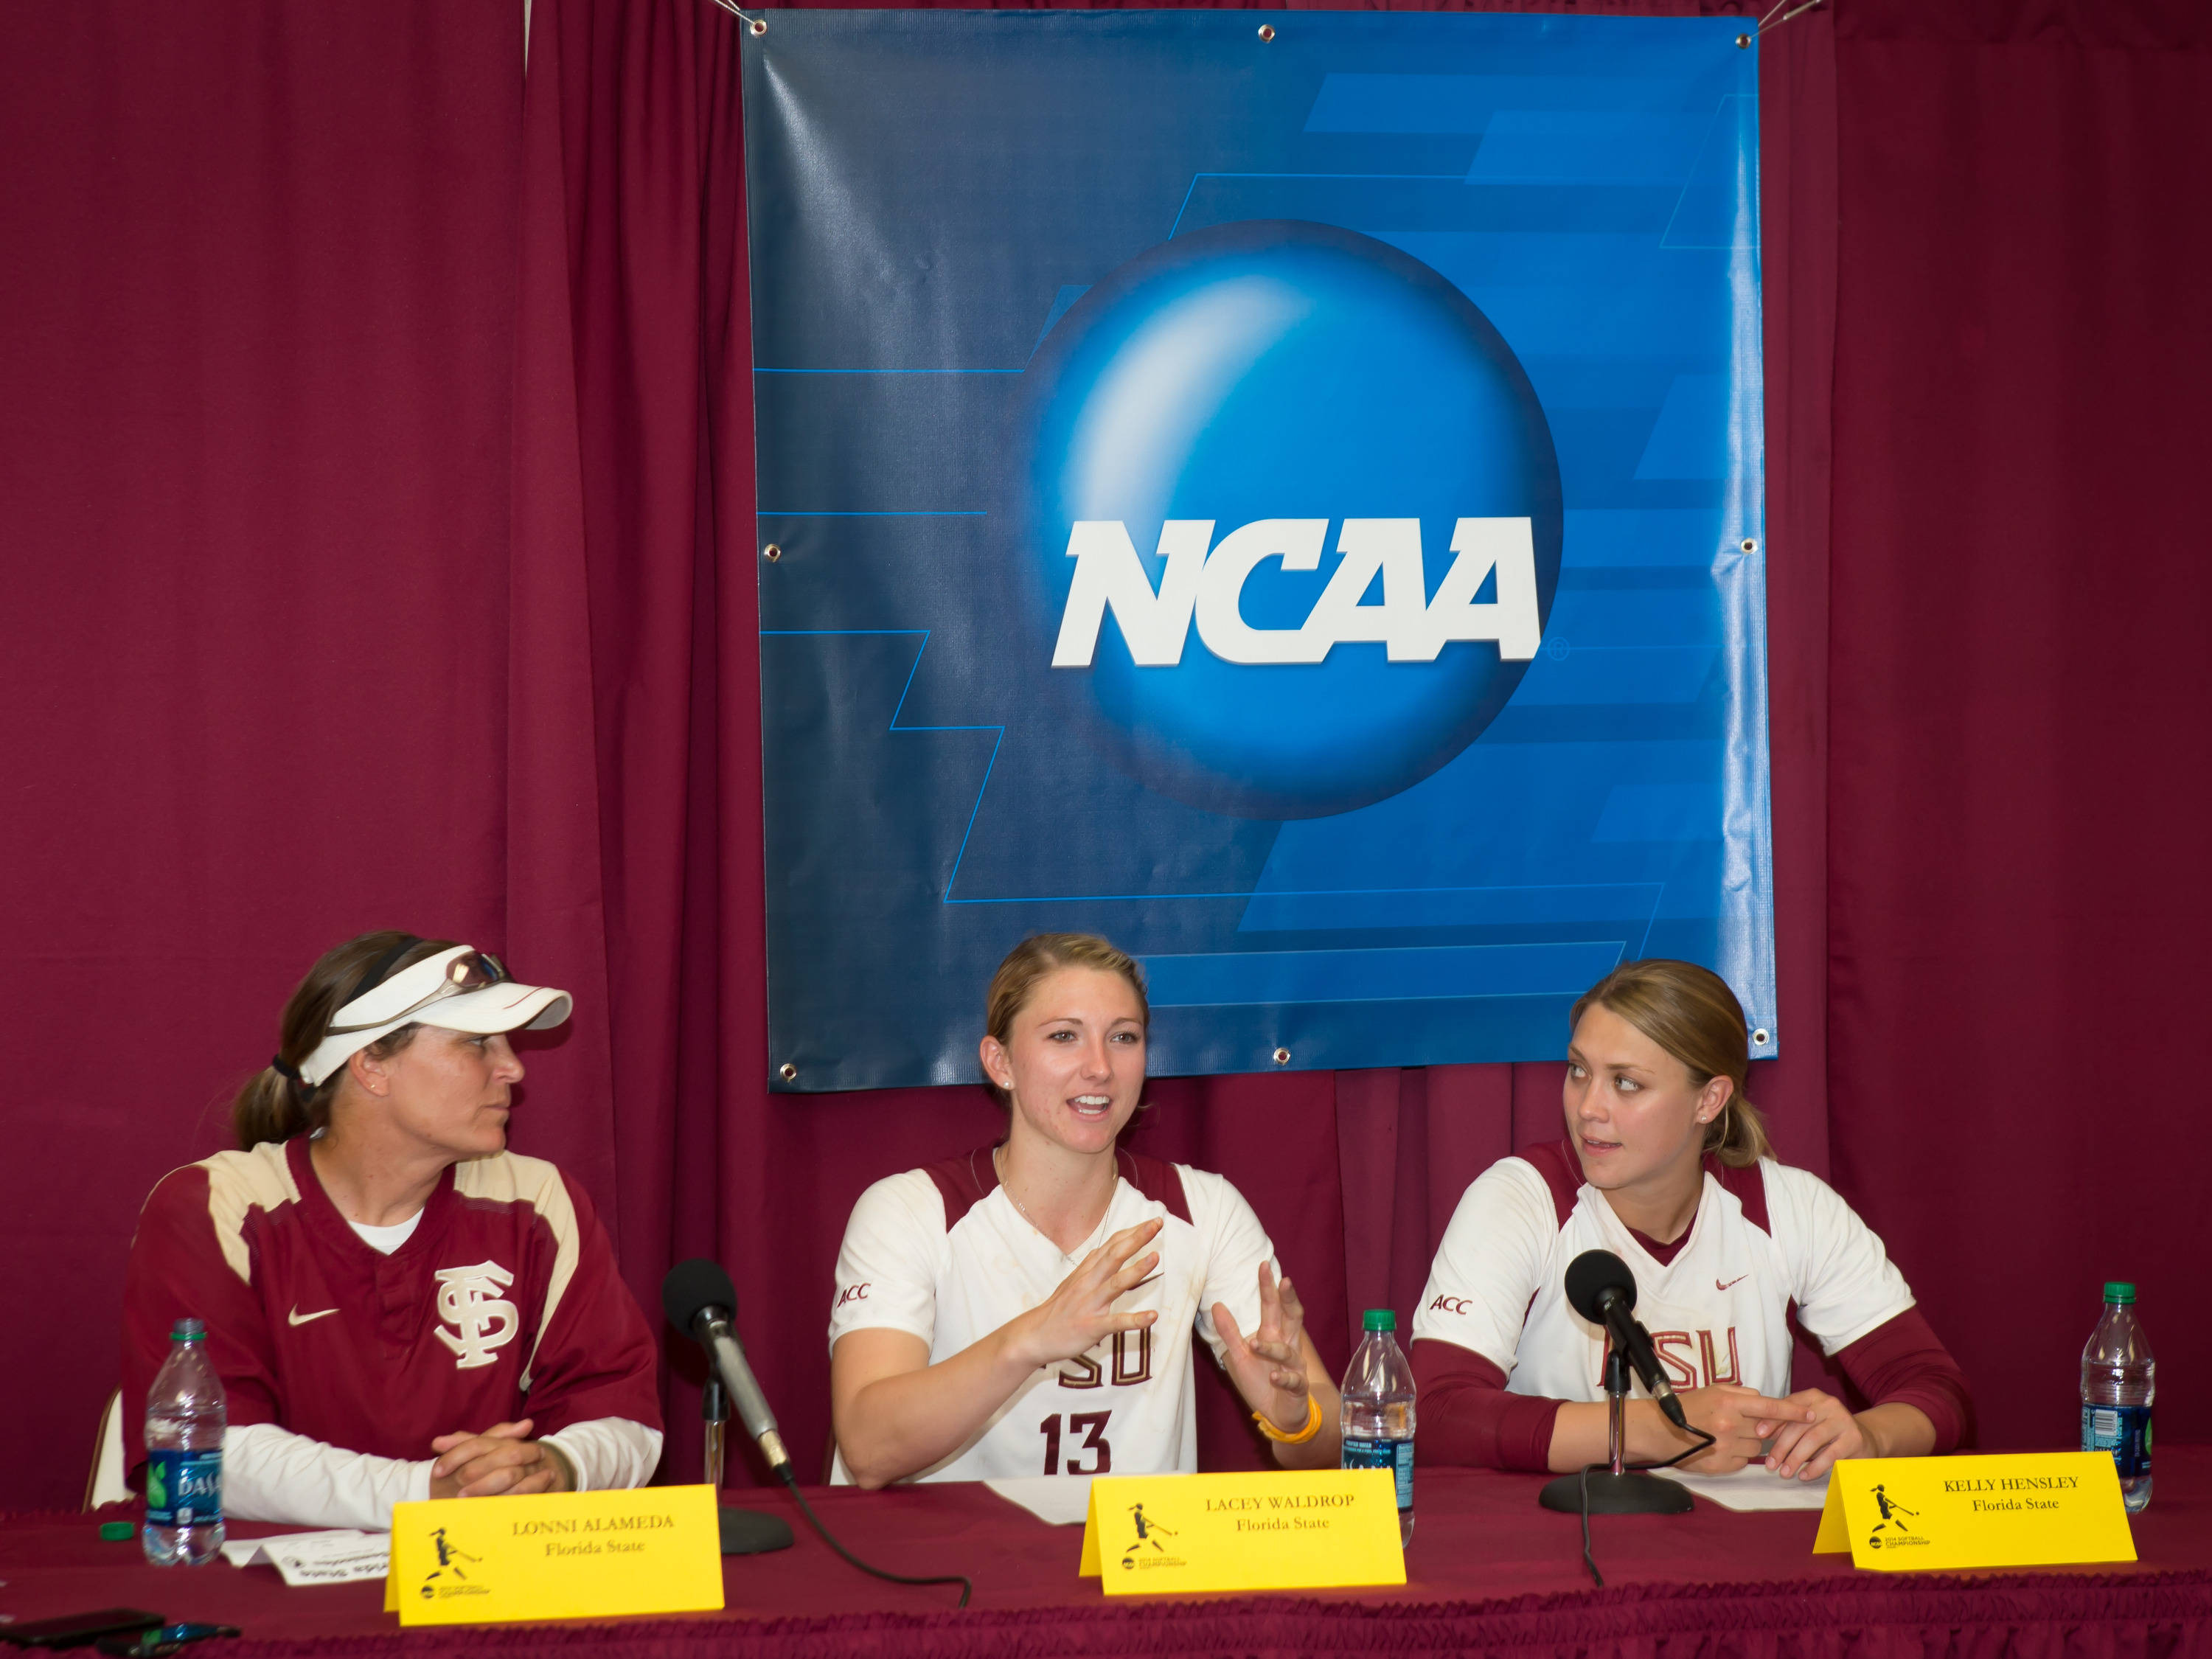 Lonni Alameda, Lacey Waldrop (13), Kelly Hensley (23) participate in the post game interview.